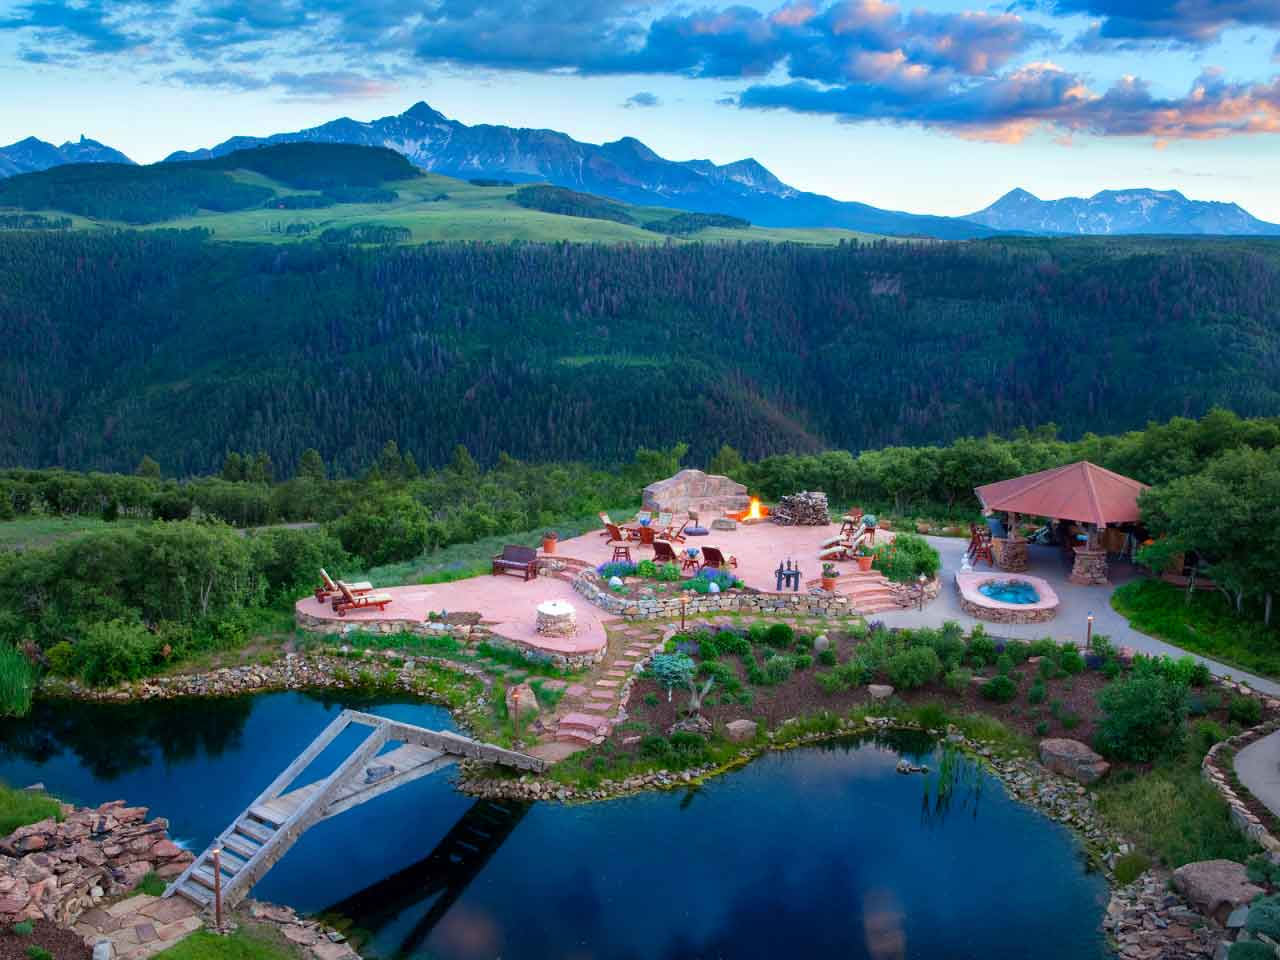 Catmando is a private, 35-acre compound at eye level with the Colorado Rockies. By day or eventide, the estate's fire-lit terrace is a lavish venue to view the majestic Gray Head Wilderness and Rocky Mountains. By night, residents can watch the stars from their own private observatory.